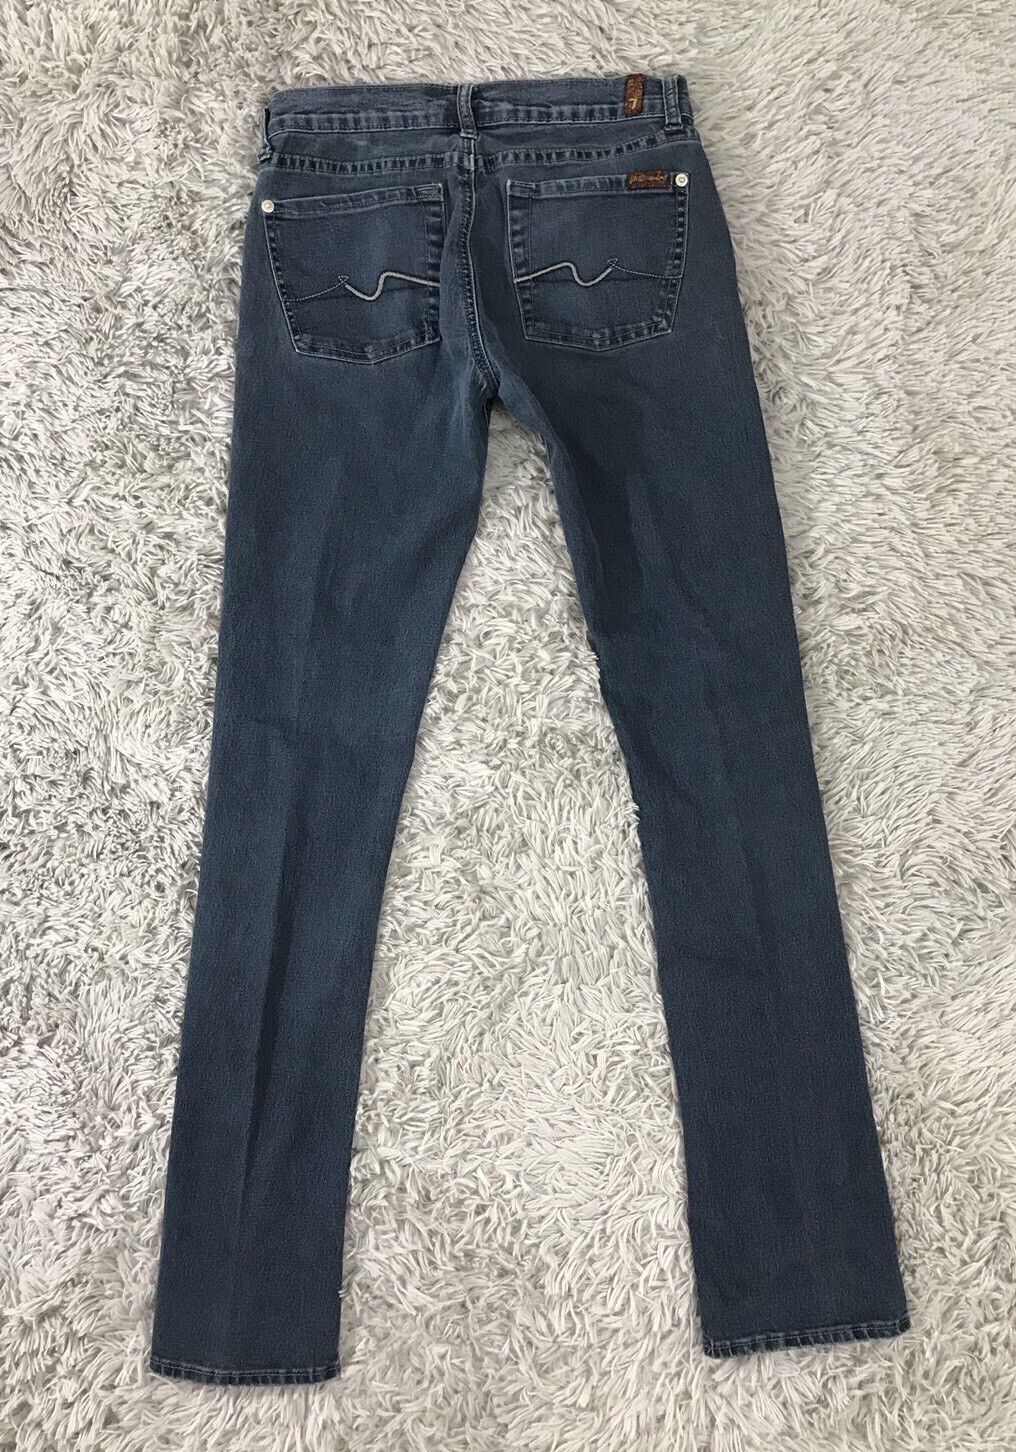 7 For All Mankind Jeans Roxy Slim Skinny Fitted Sz 27 (28x31)